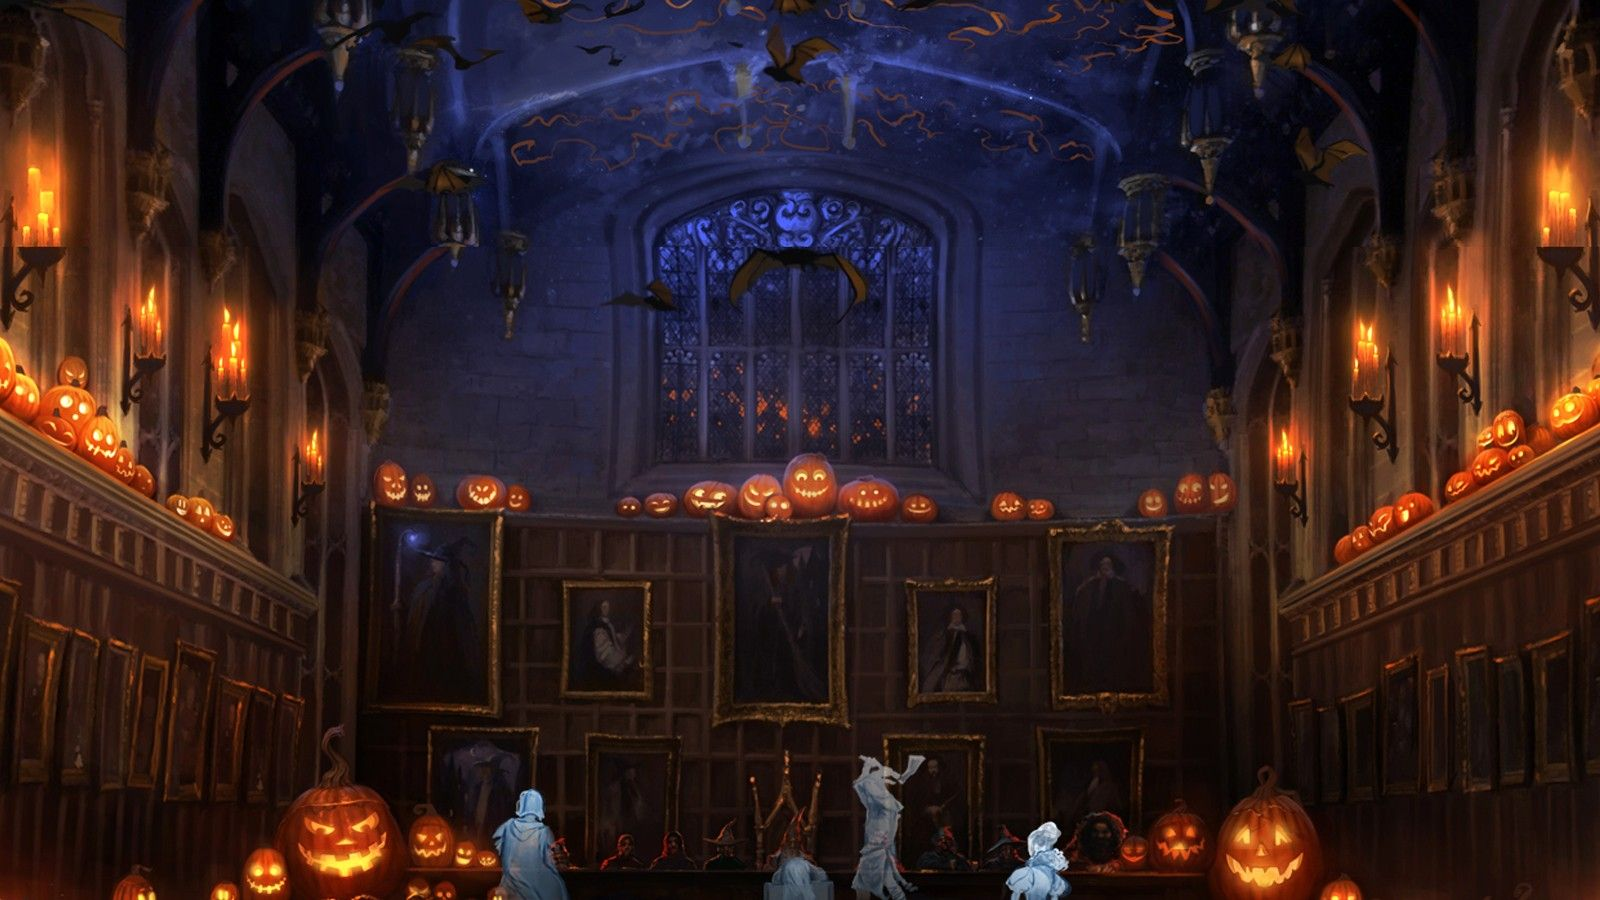 Pottermore Background Halloween In The Great Hall By Xxtayce On Deviantart In 2020 Pottermore The Hallow Harry Potter Pottermore